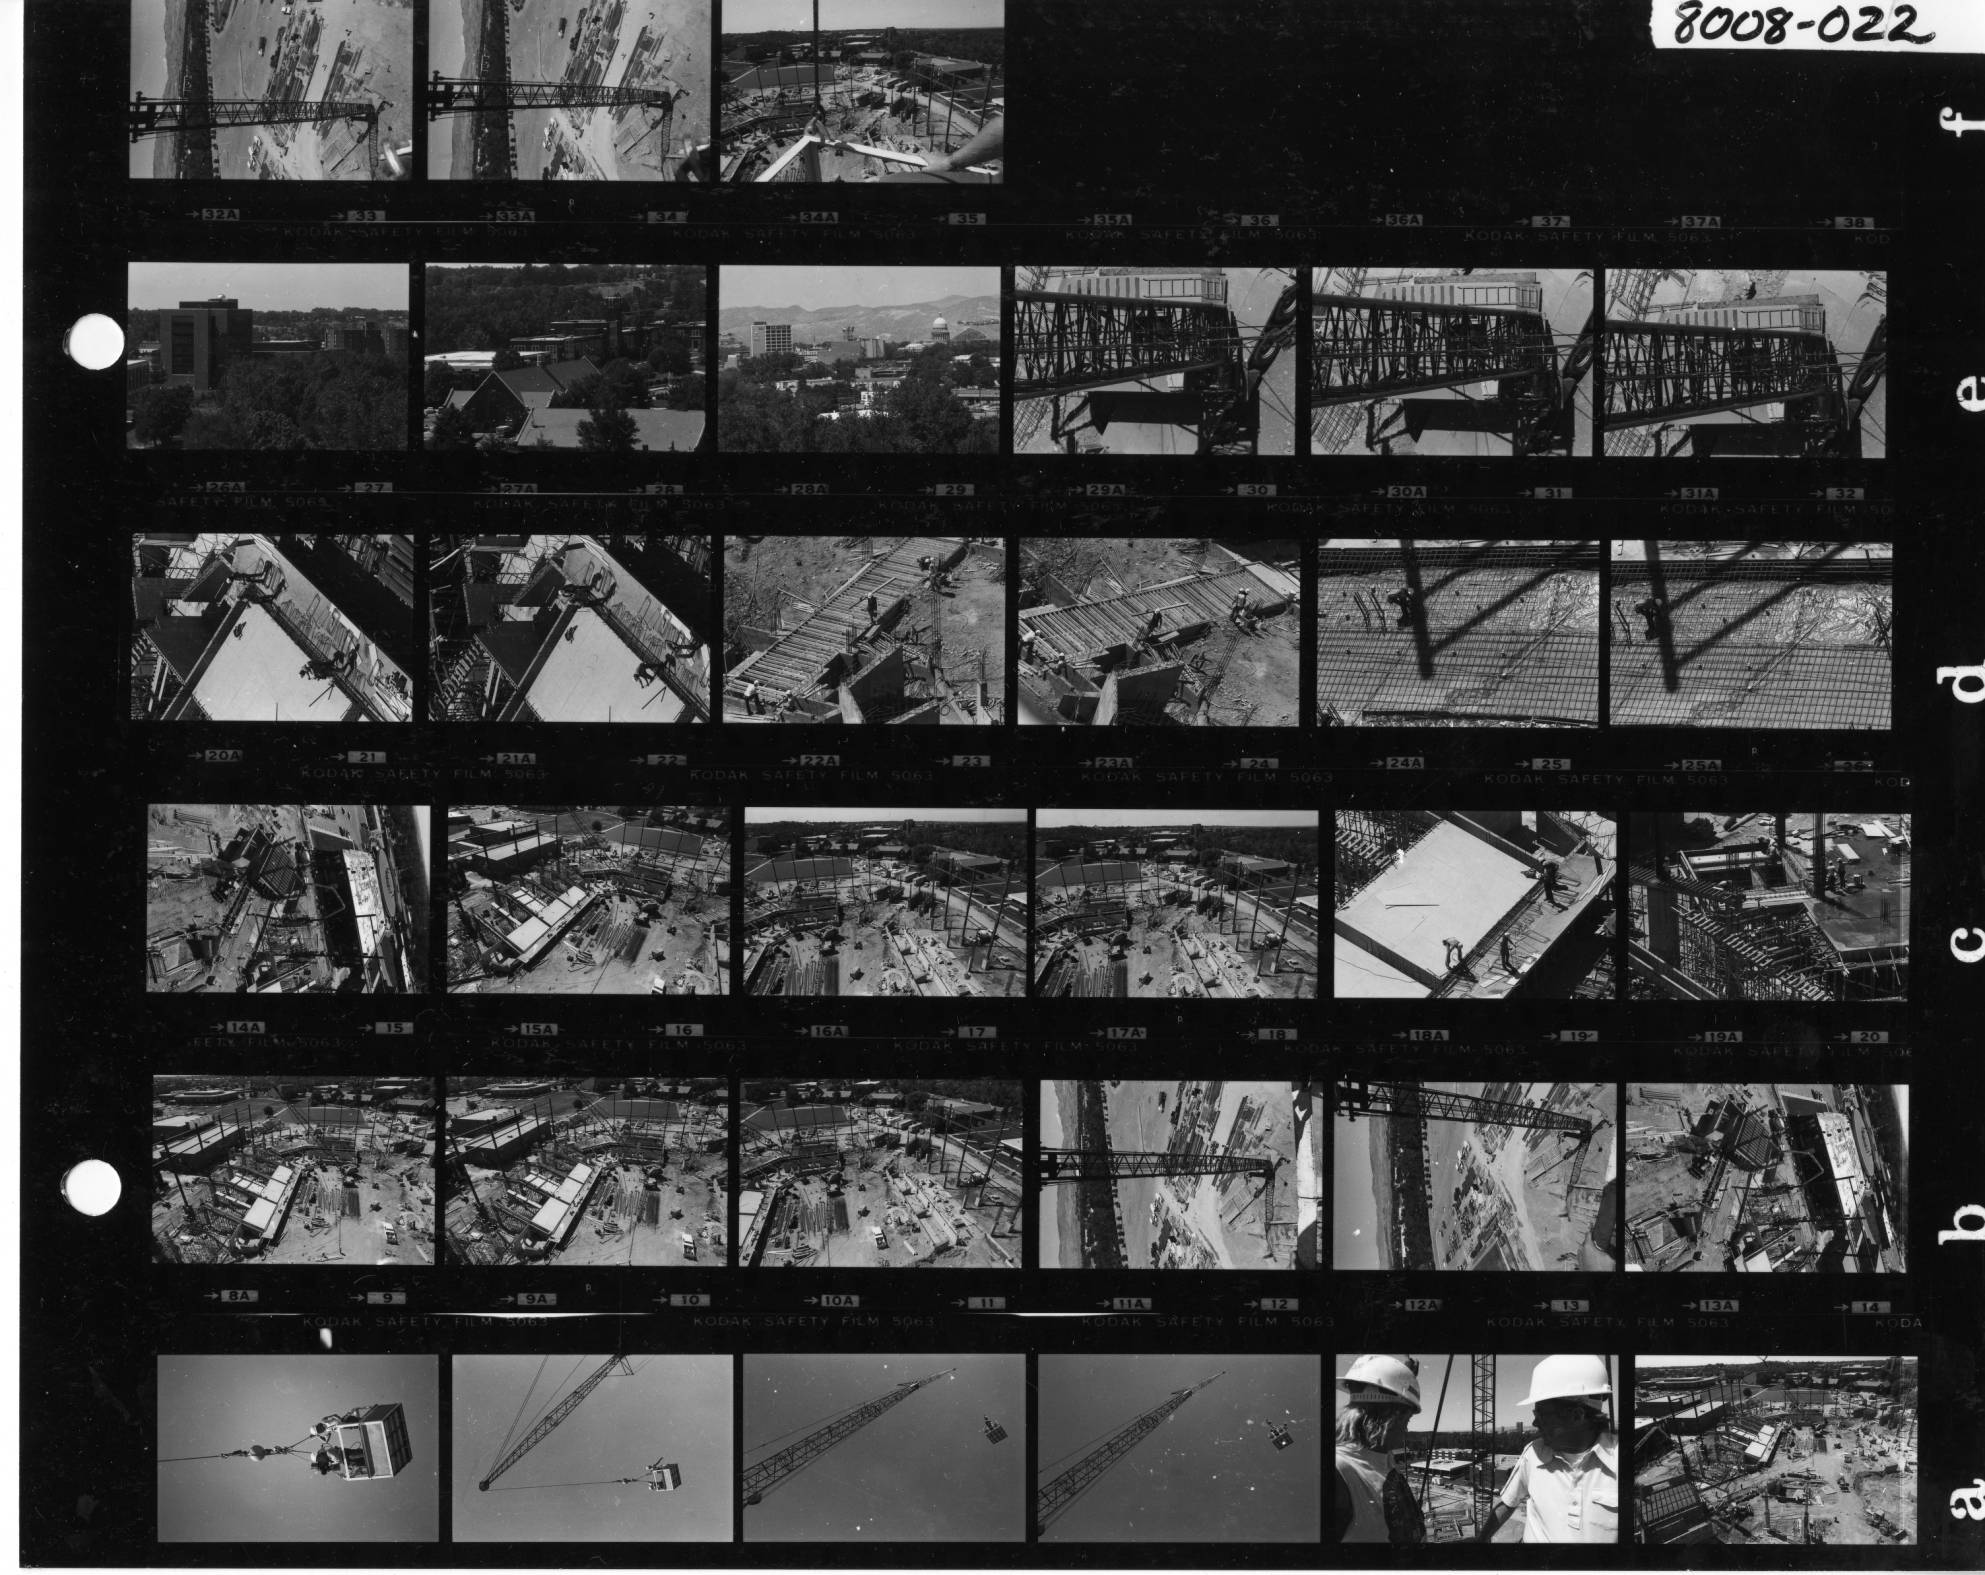 Contact sheet of facility under construction. Provided by BSU Special Collections.